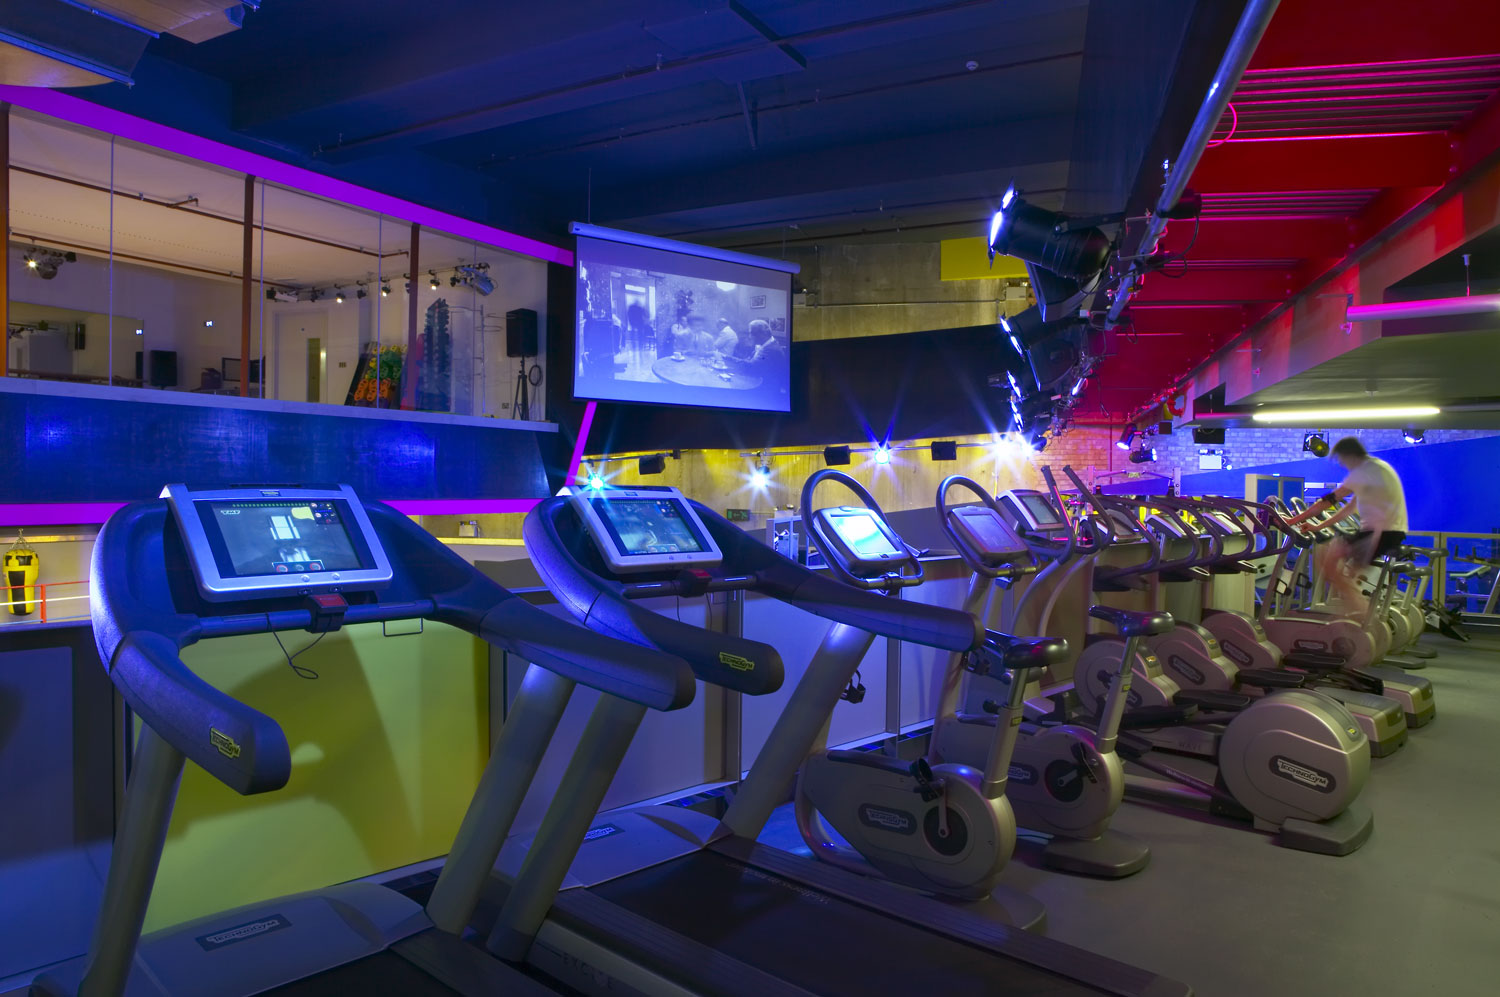 Gymbox Covent Garden, London spinning area   Photographer Interiors   Commercial Professional Photographer